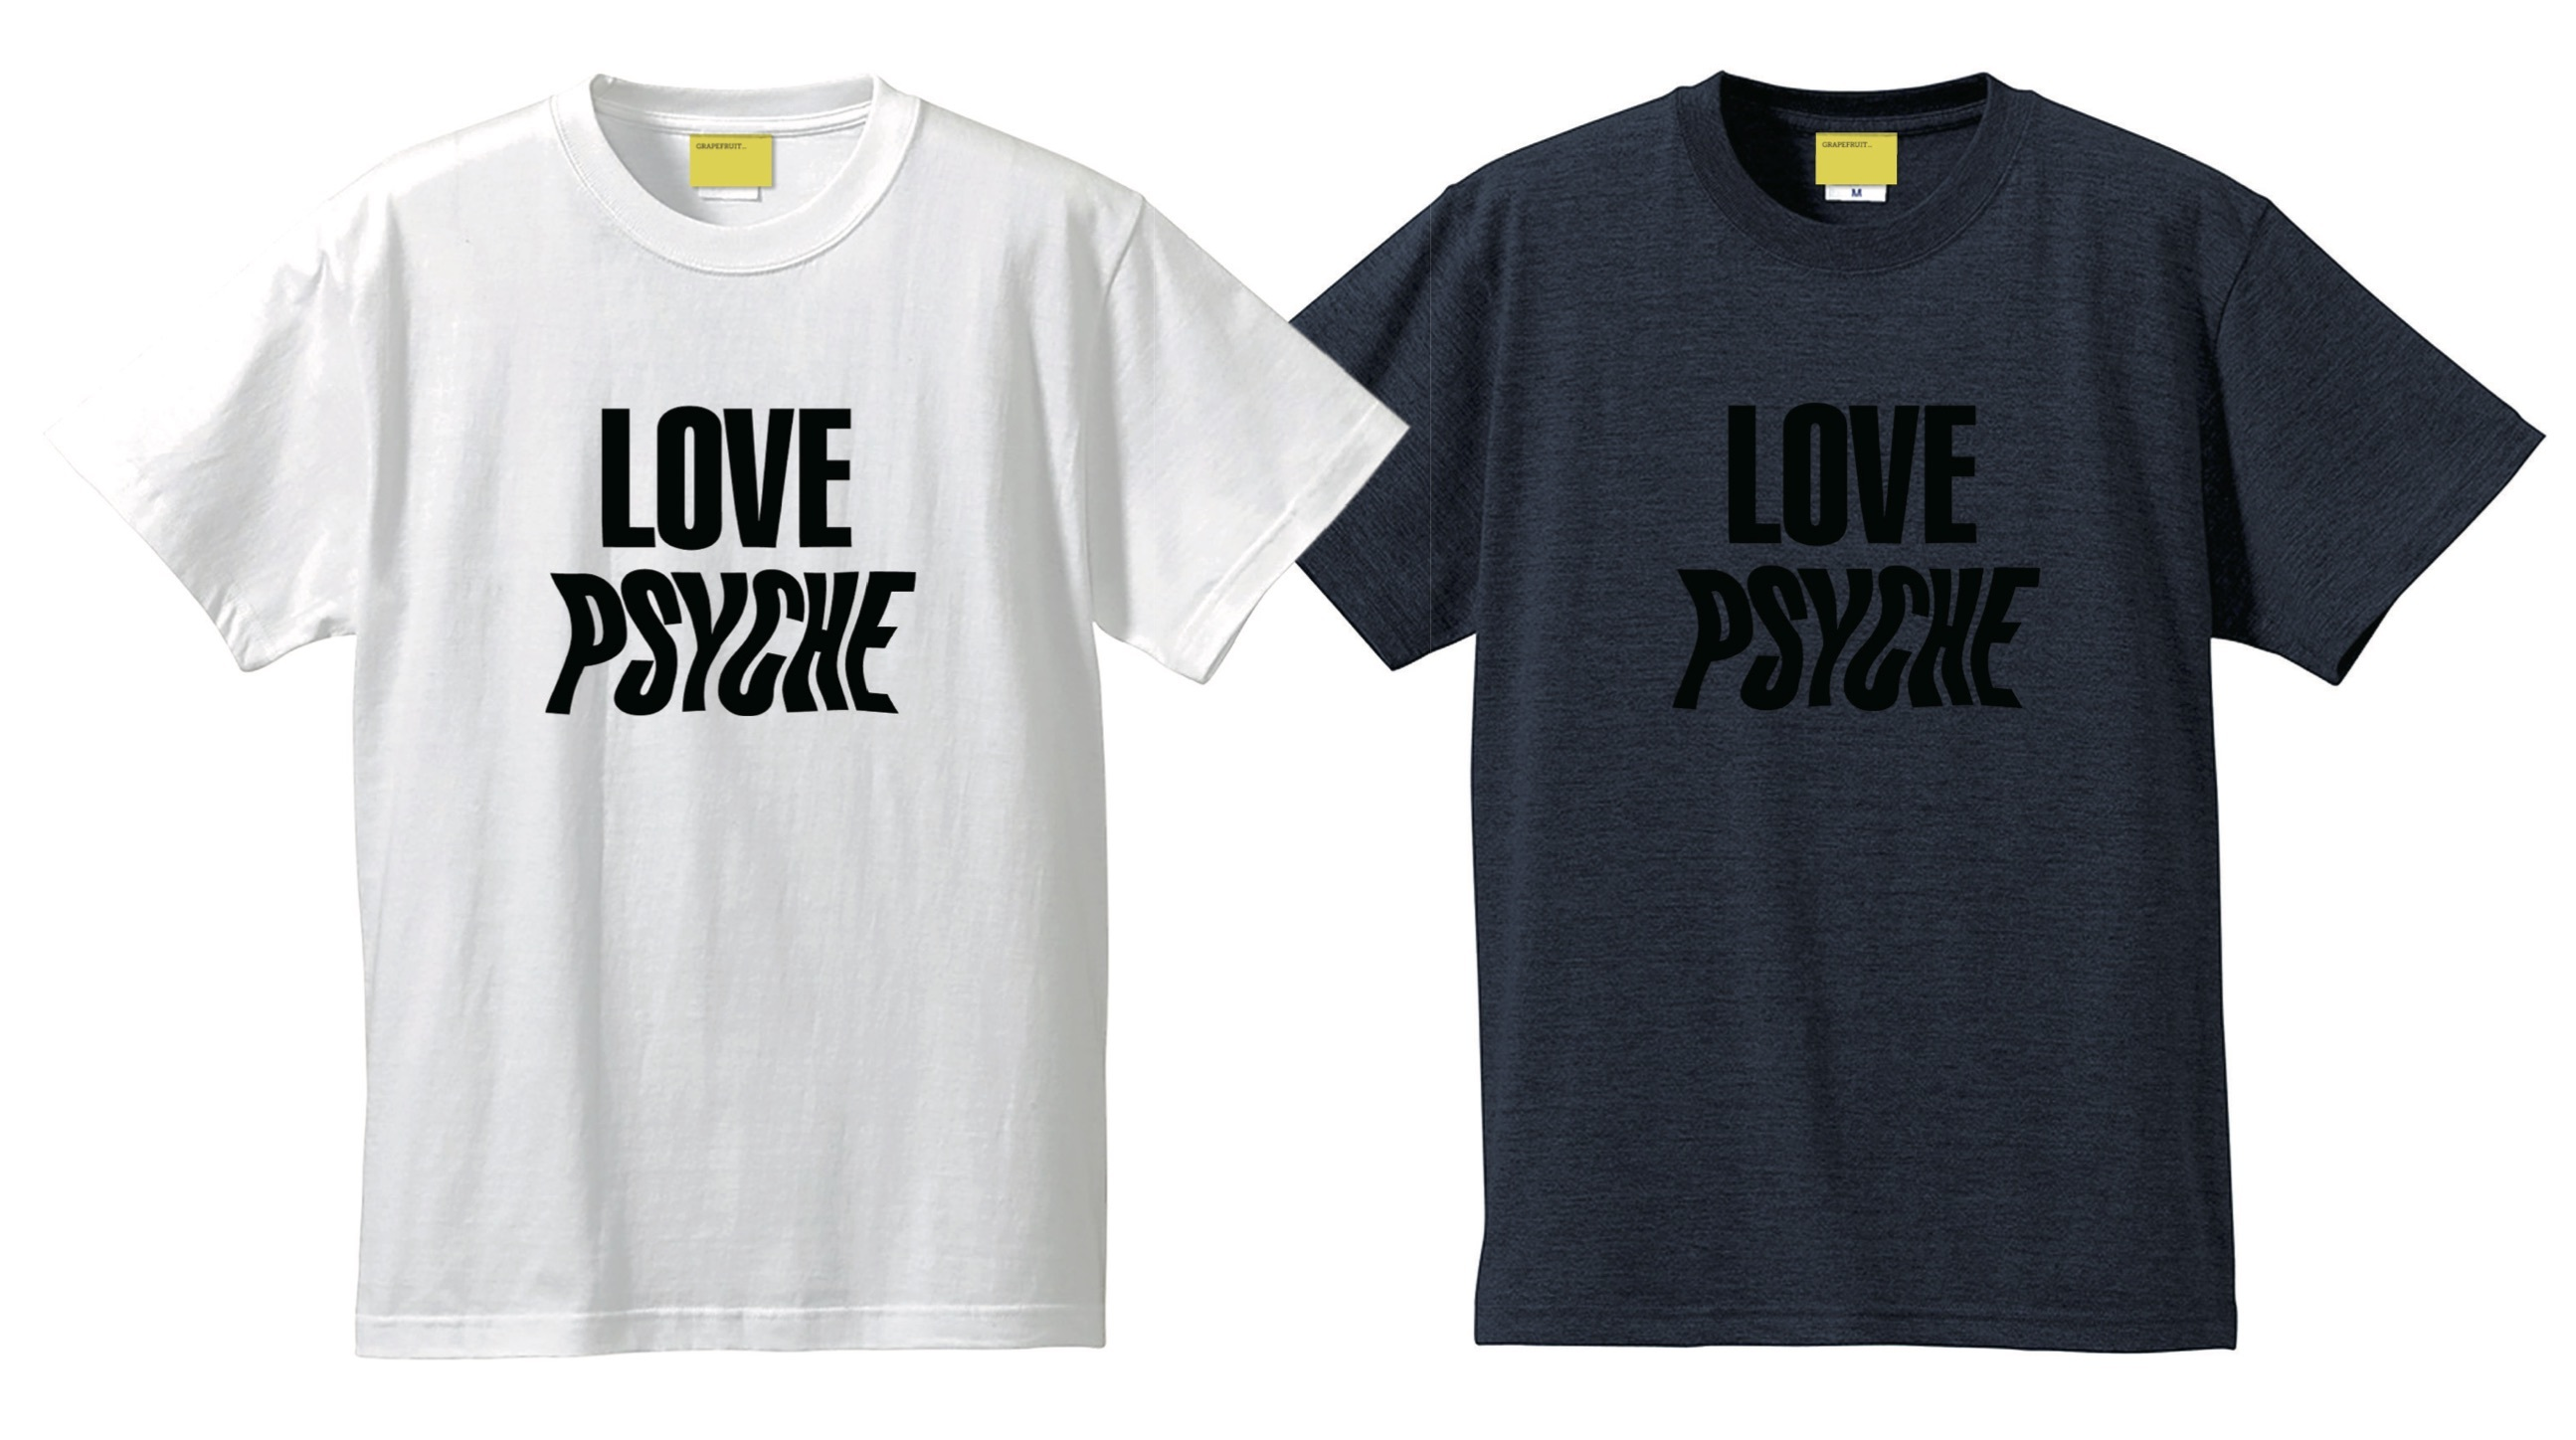 2017 LOVE YOUR LOVE LOVE PSYCHE Tシャツ